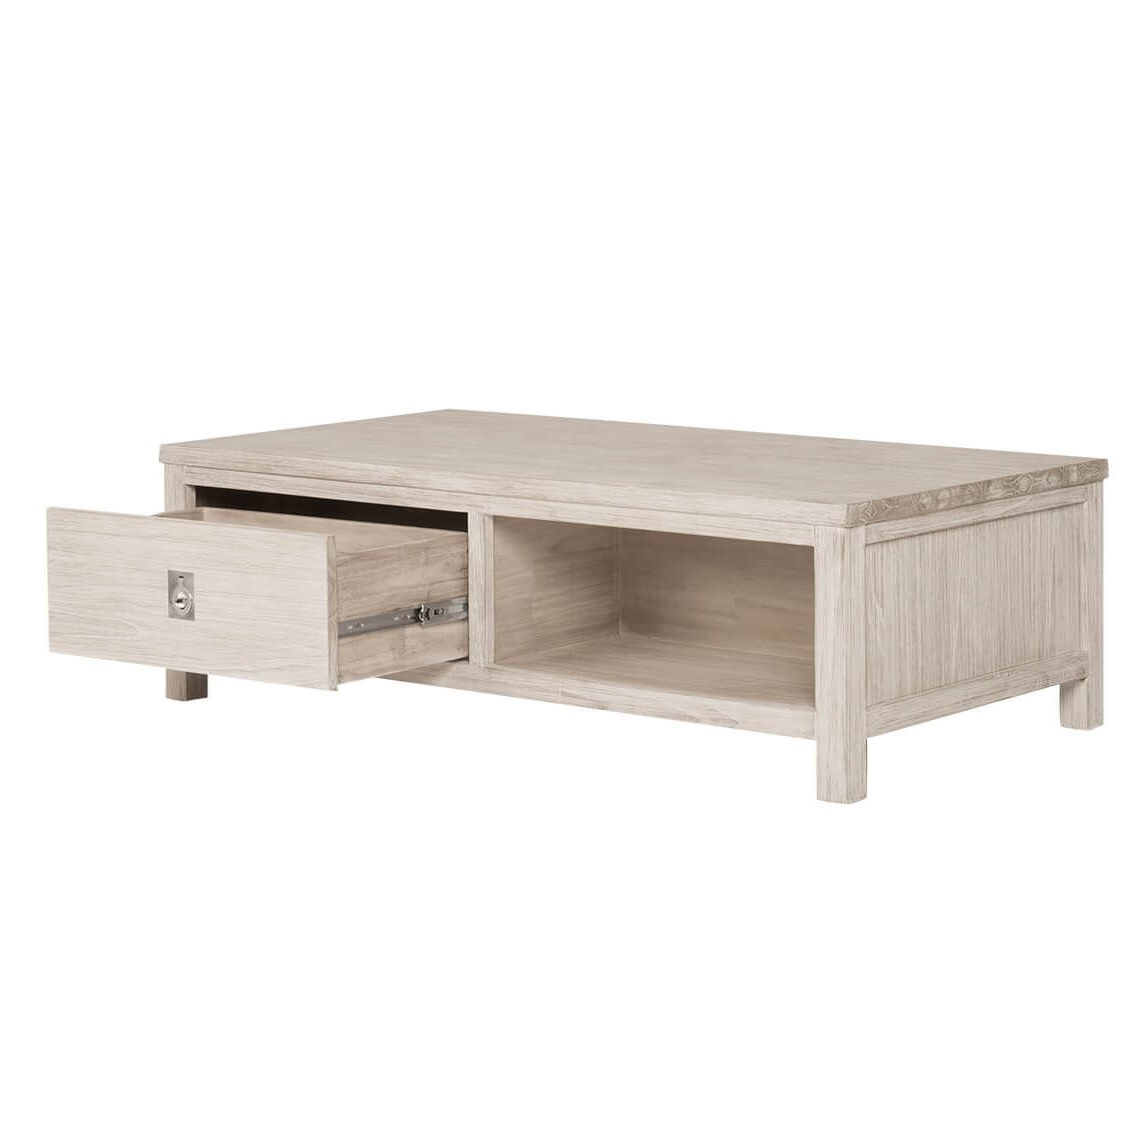 2018 White Wash 2 Drawer/1 Door Coffee Tables Intended For Cancun Coffee (View 1 of 20)